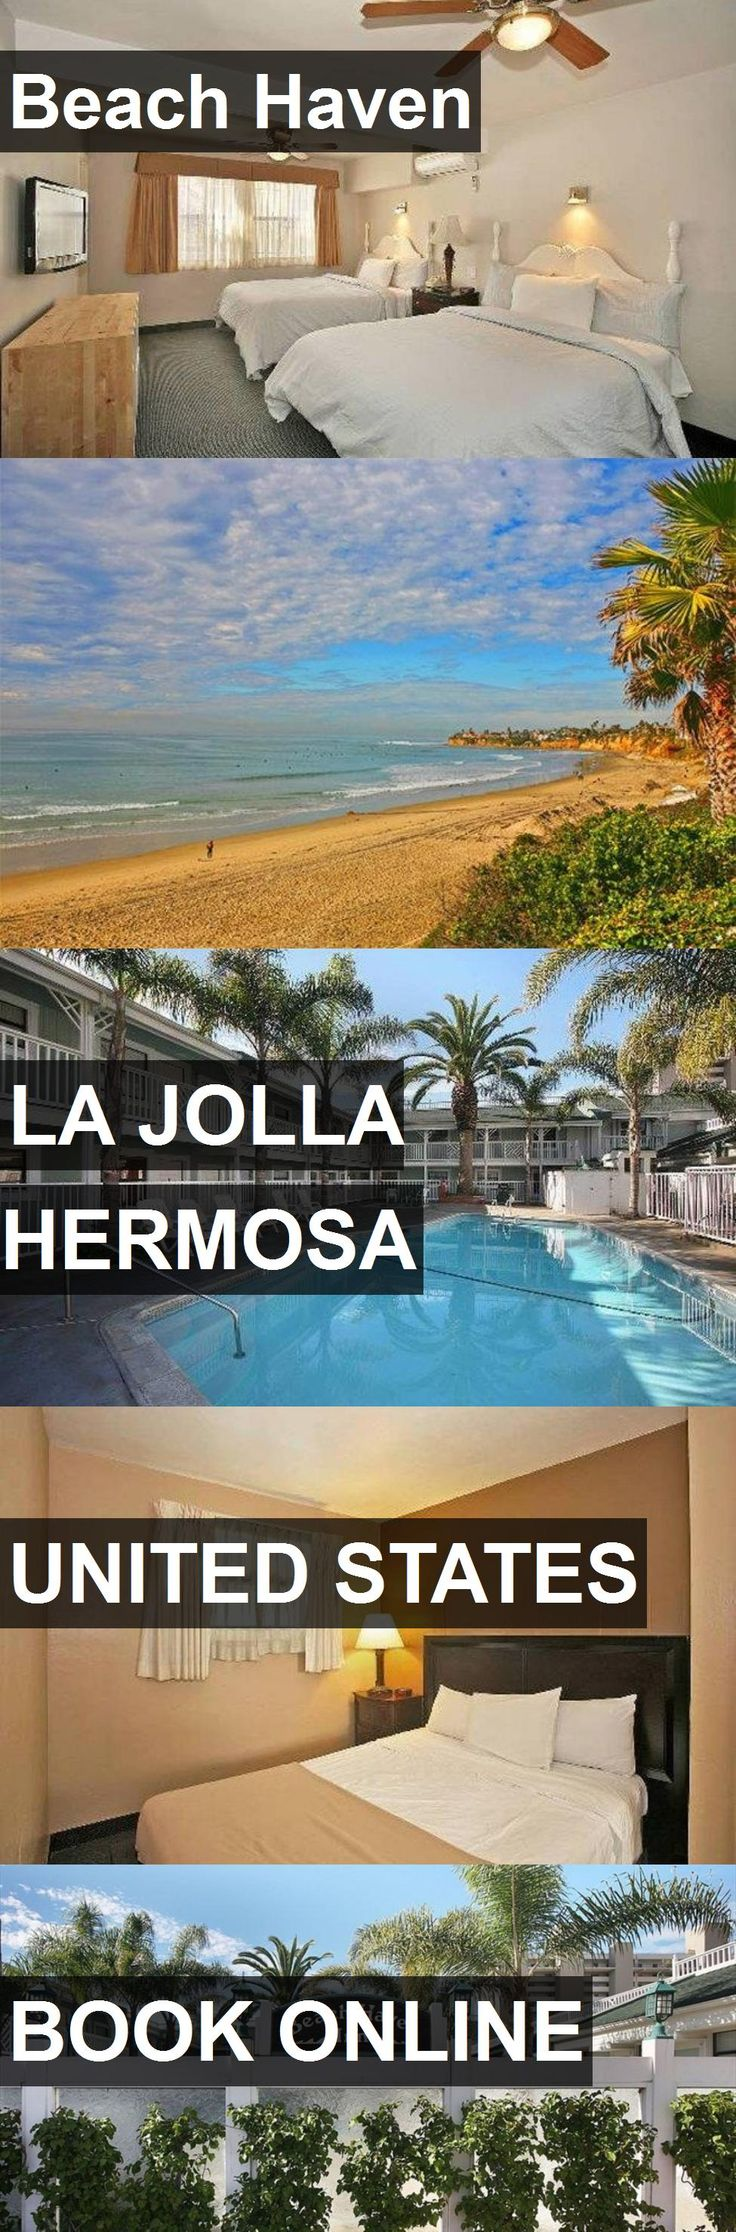 Hotel Beach Haven in La Jolla Hermosa, United States. For more information, photos, reviews and best prices please follow the link. #UnitedStates #LaJollaHermosa #travel #vacation #hotel